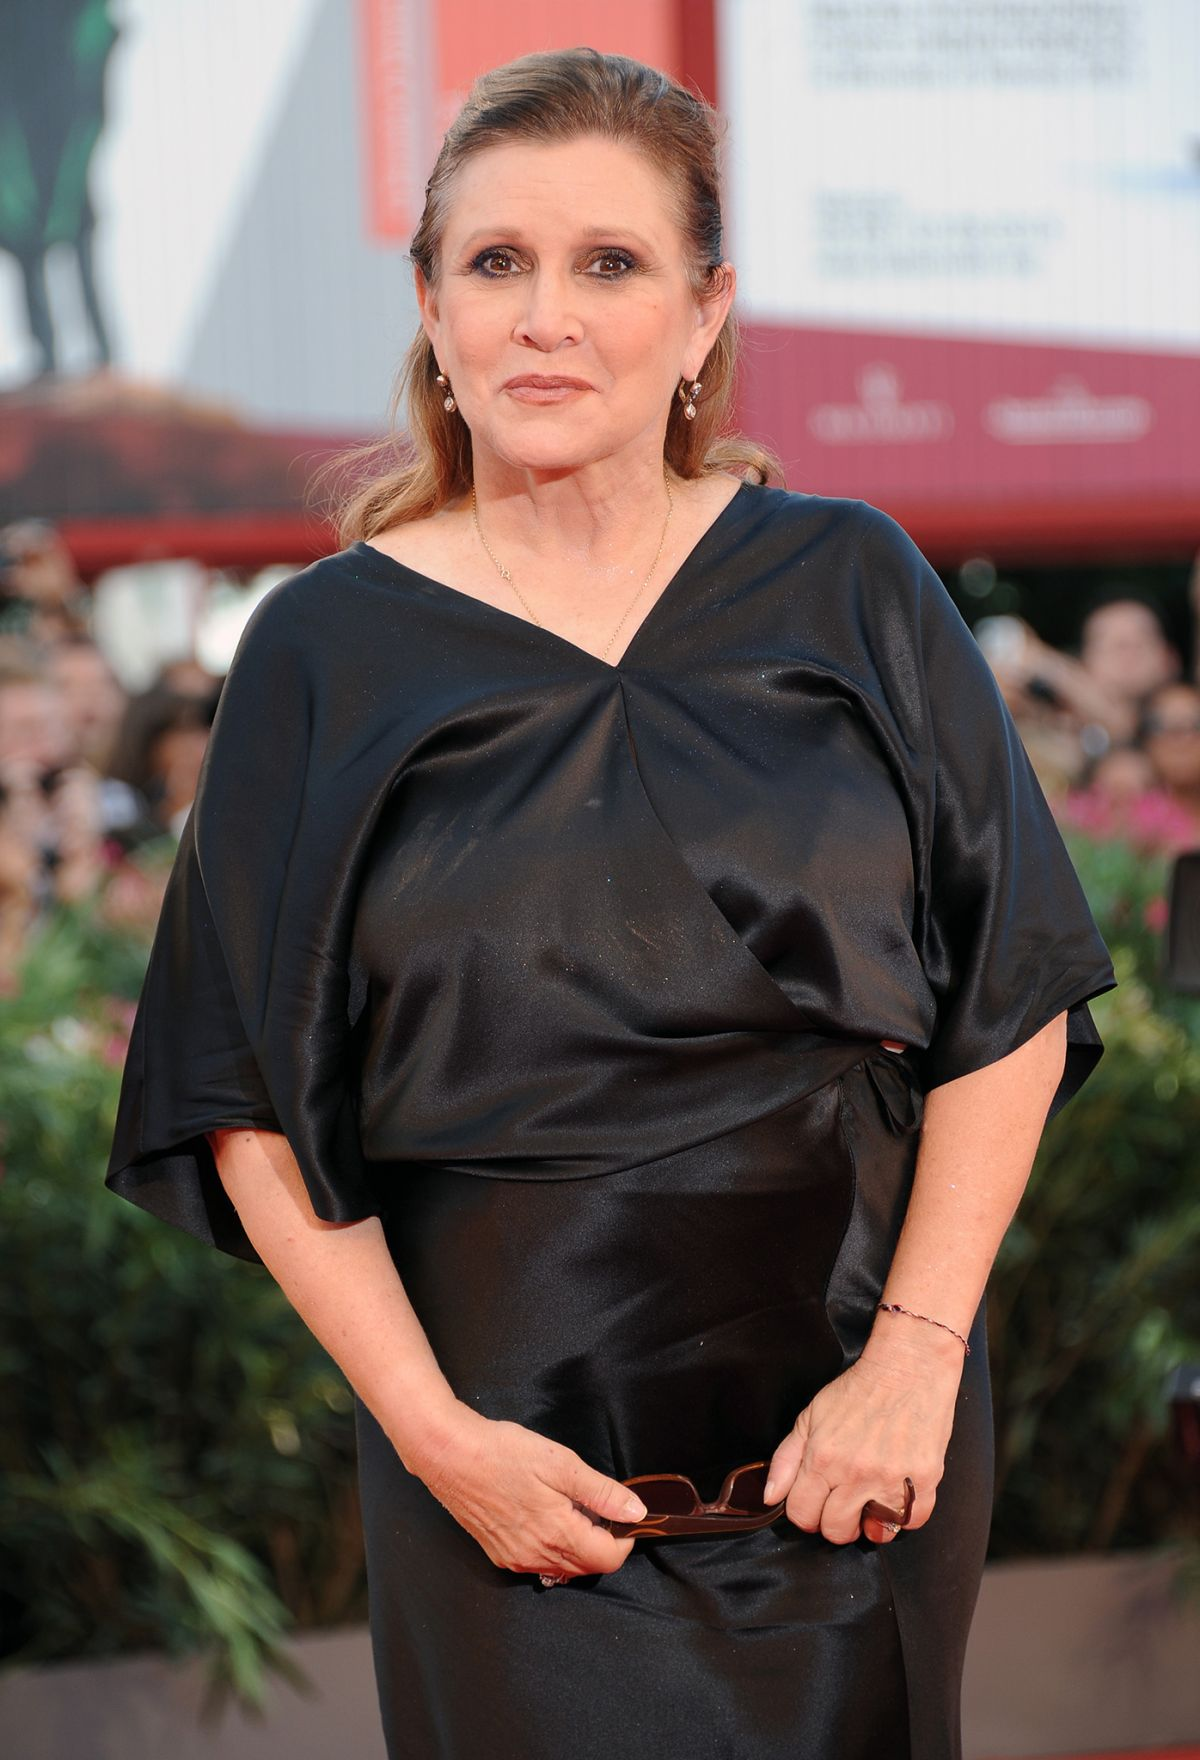 Carrie Fisher At Gravity Premiere And Opening Ceremony In Italy